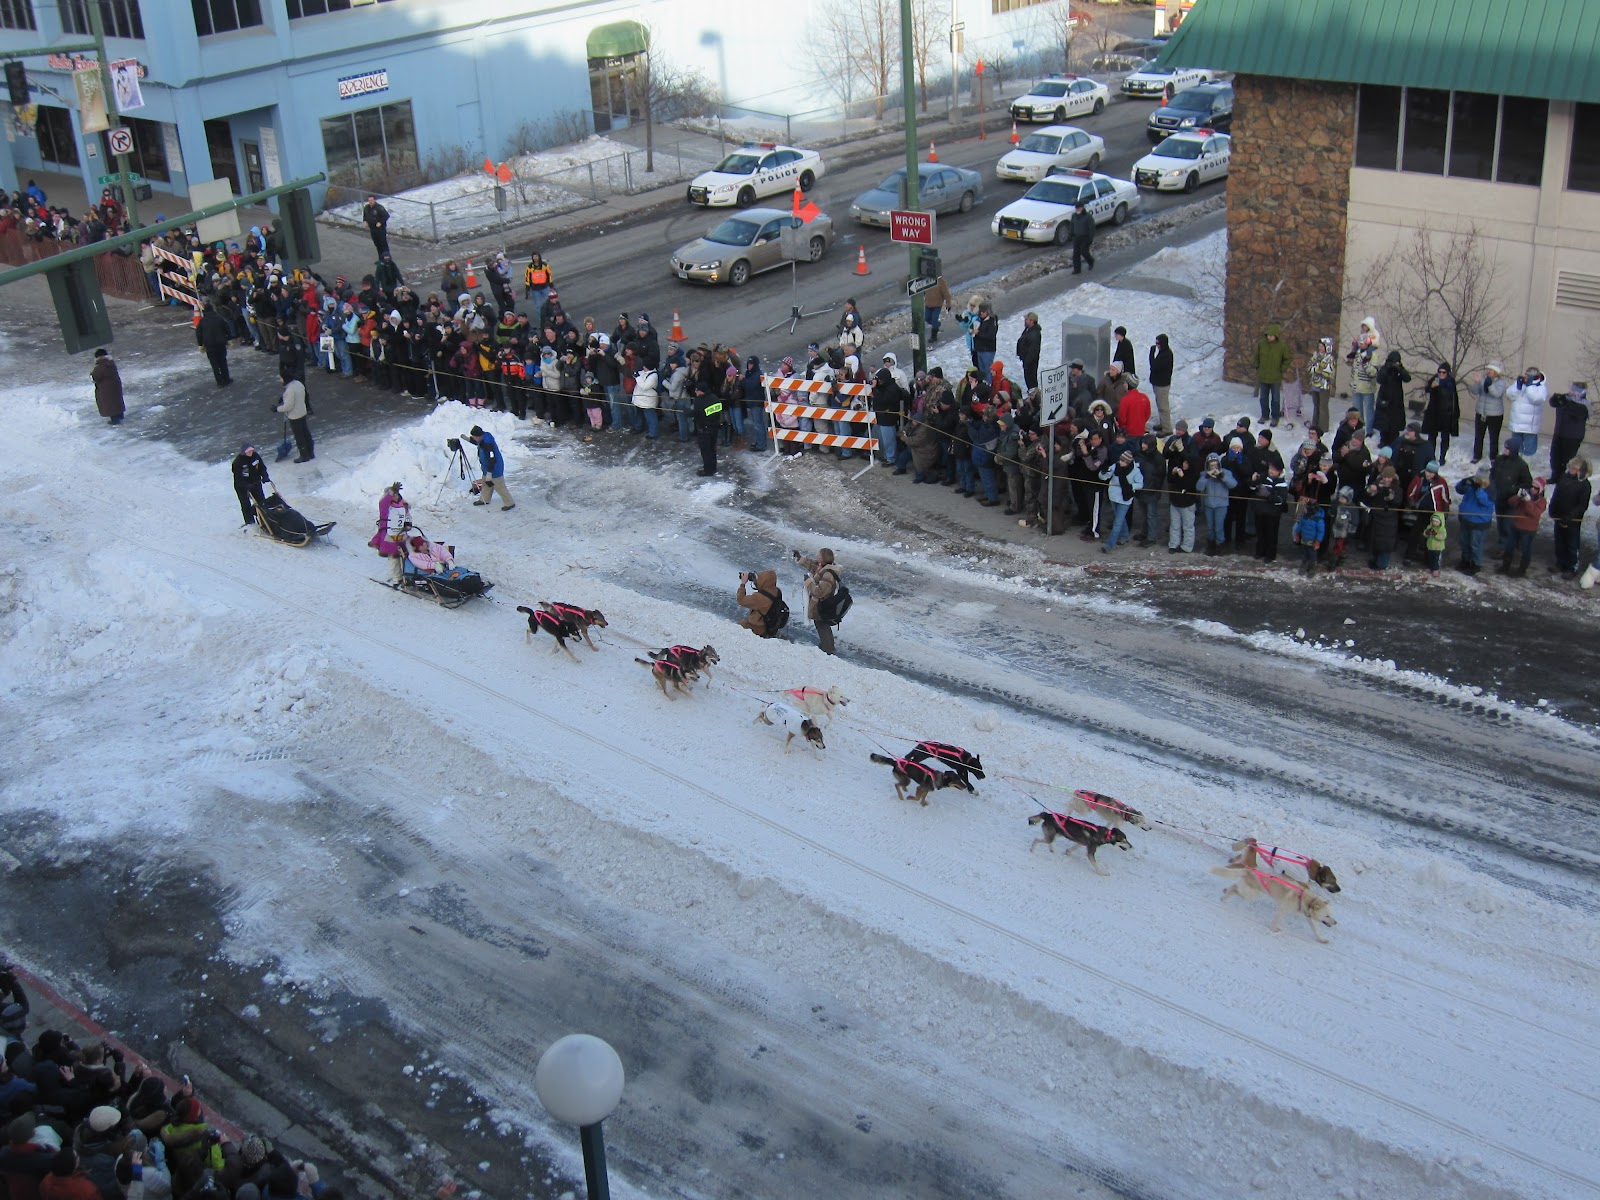 Iditarod Sled Dog Race, Alaska